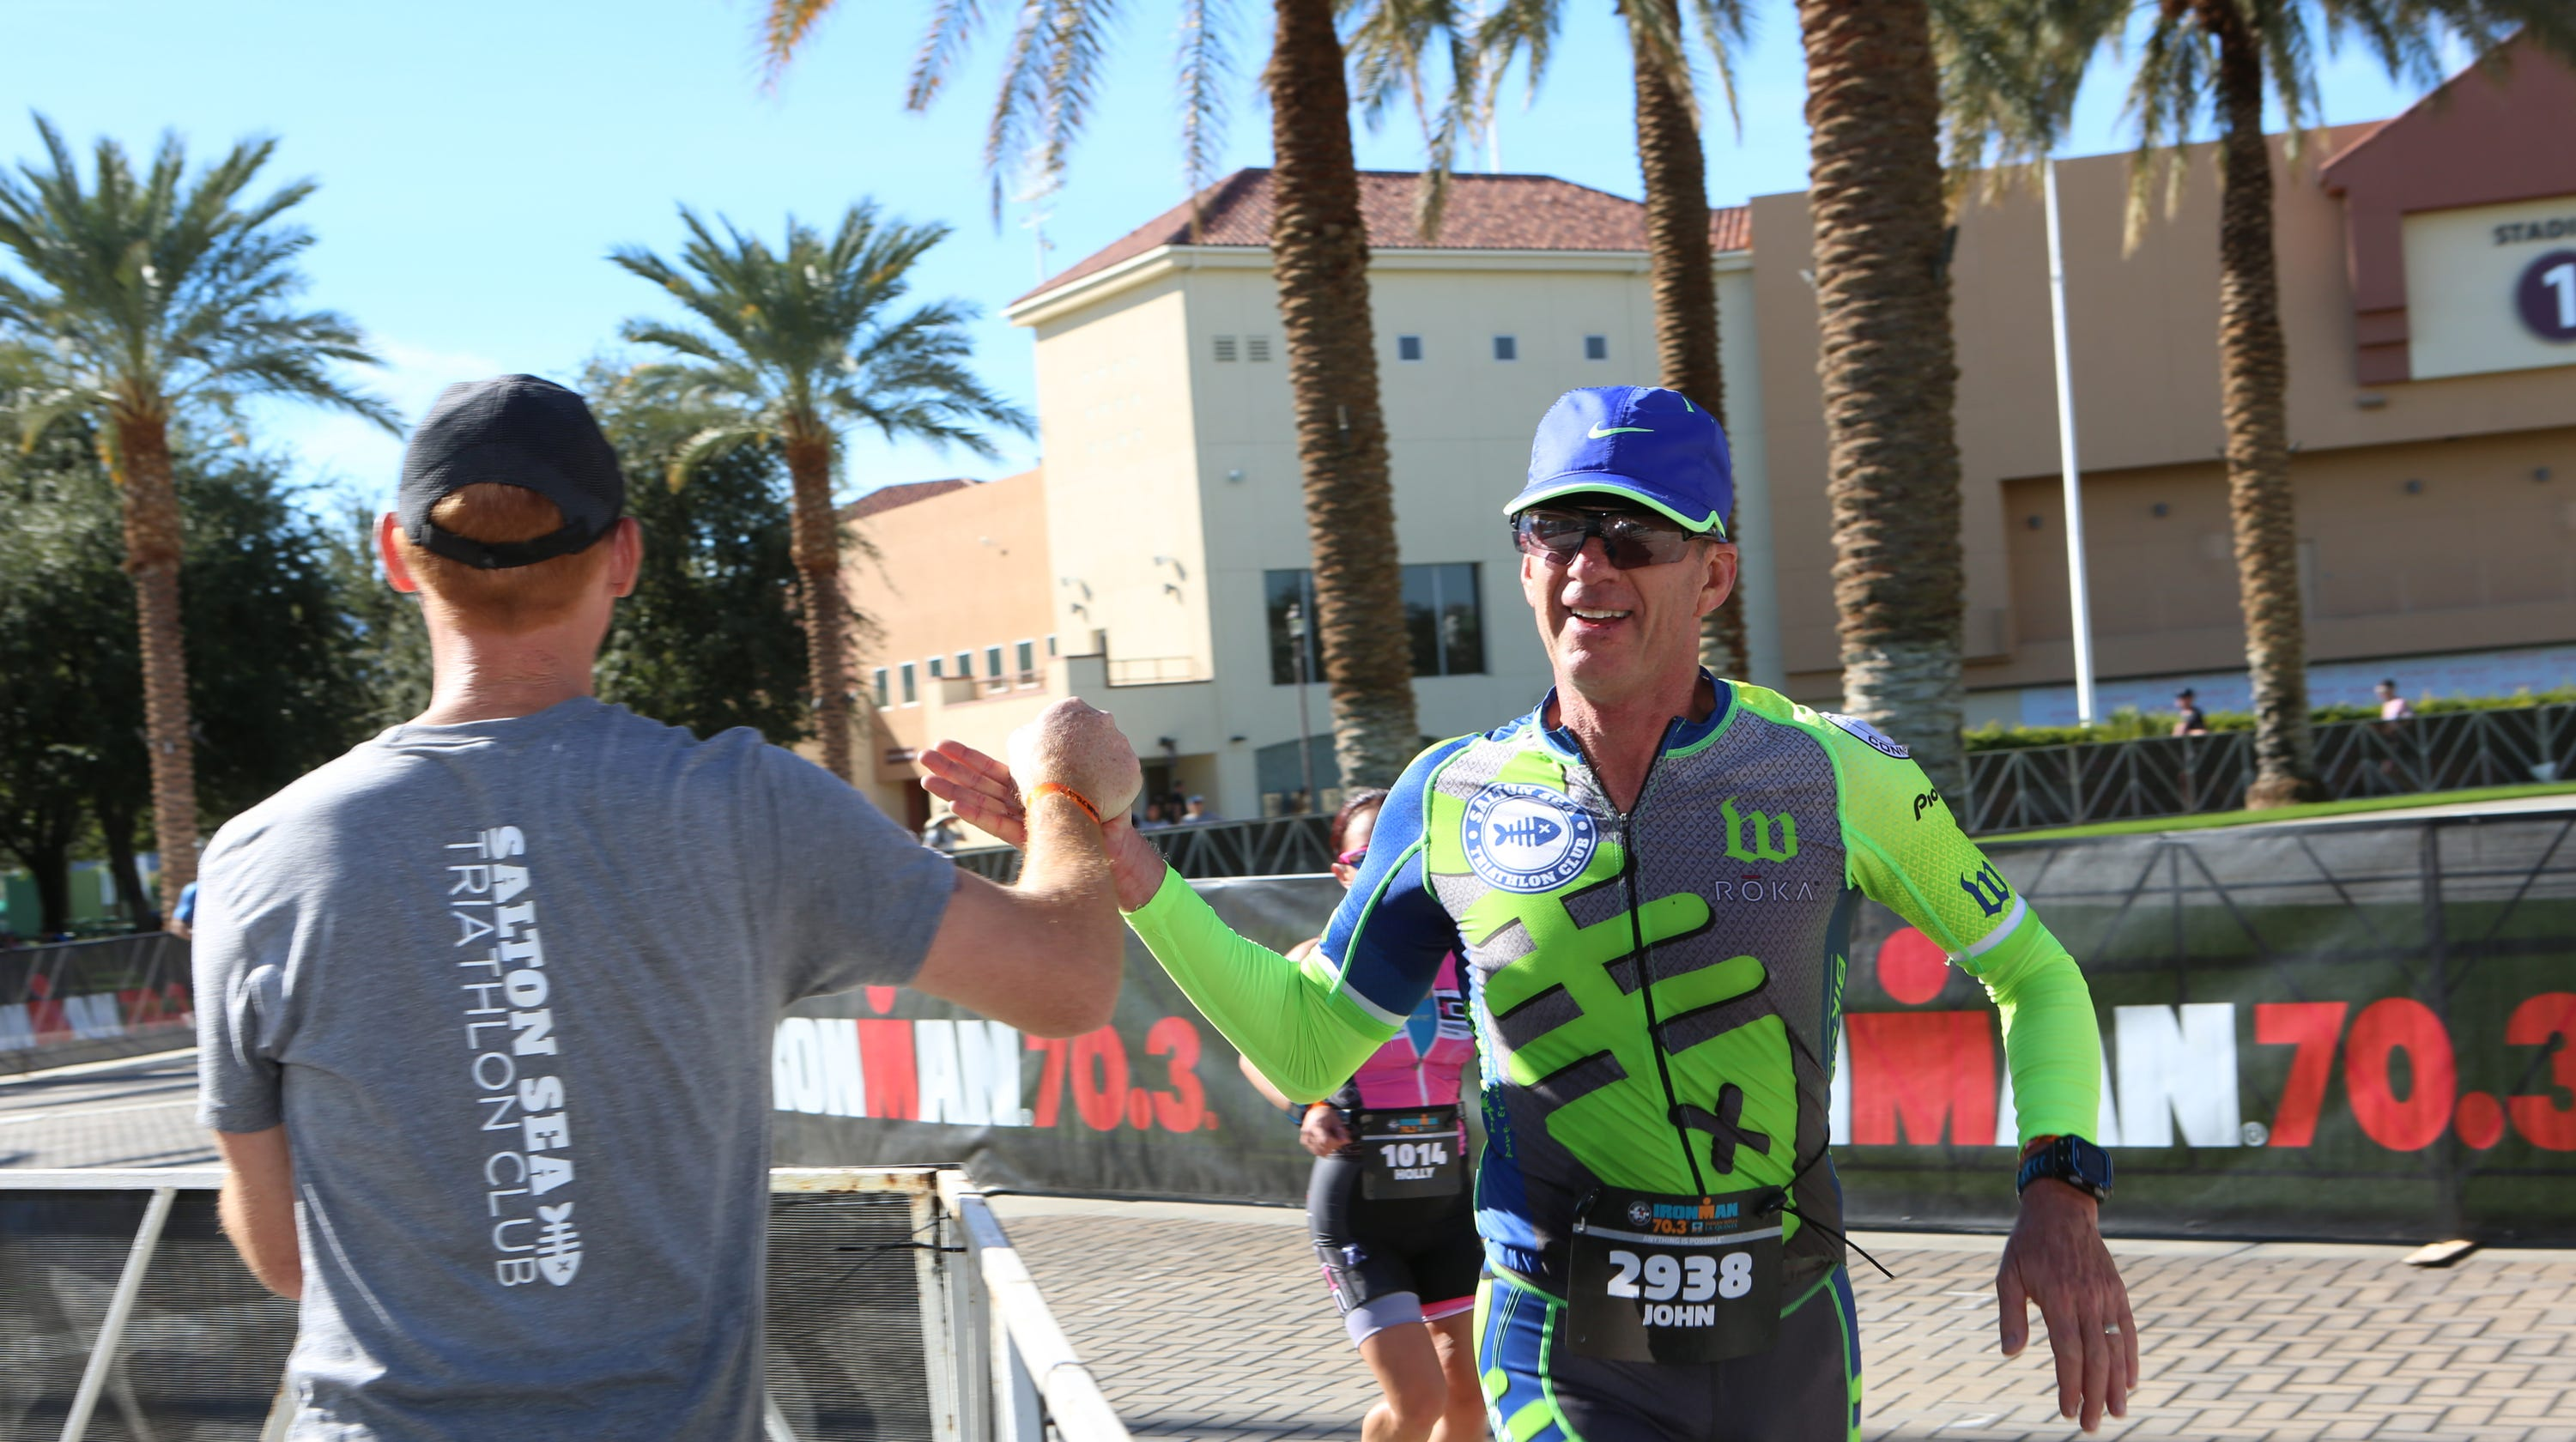 Ironman Will Return To La Quinta In 2019 With A New Route